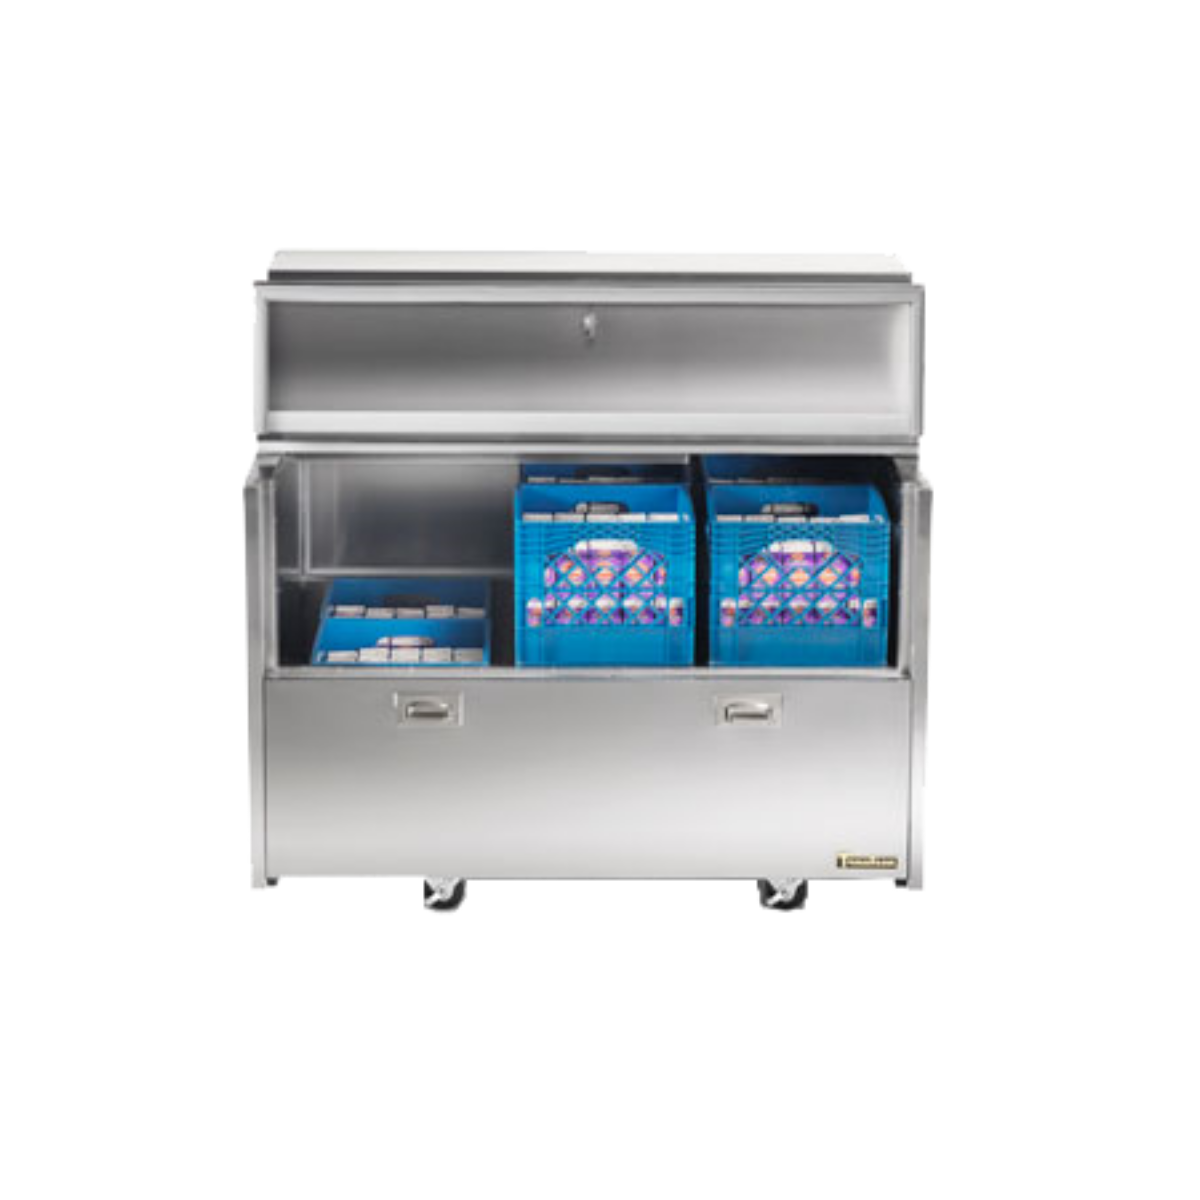 Traulsen RMC58S6 Milk Cooler/Station